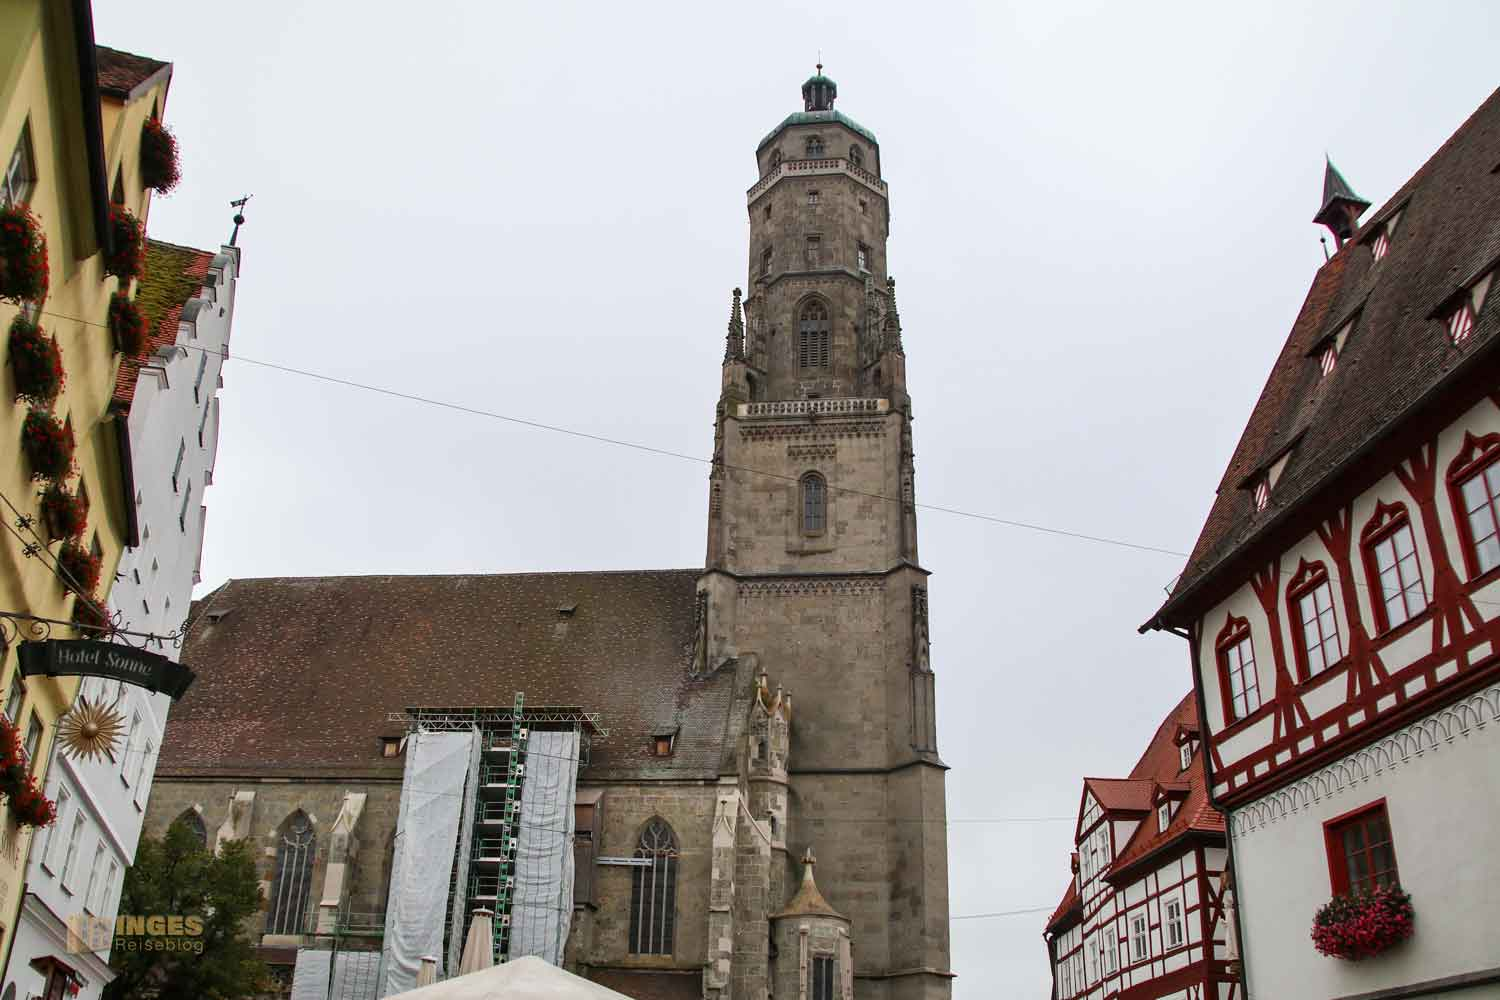 Münster St. Georg in Nördlingen